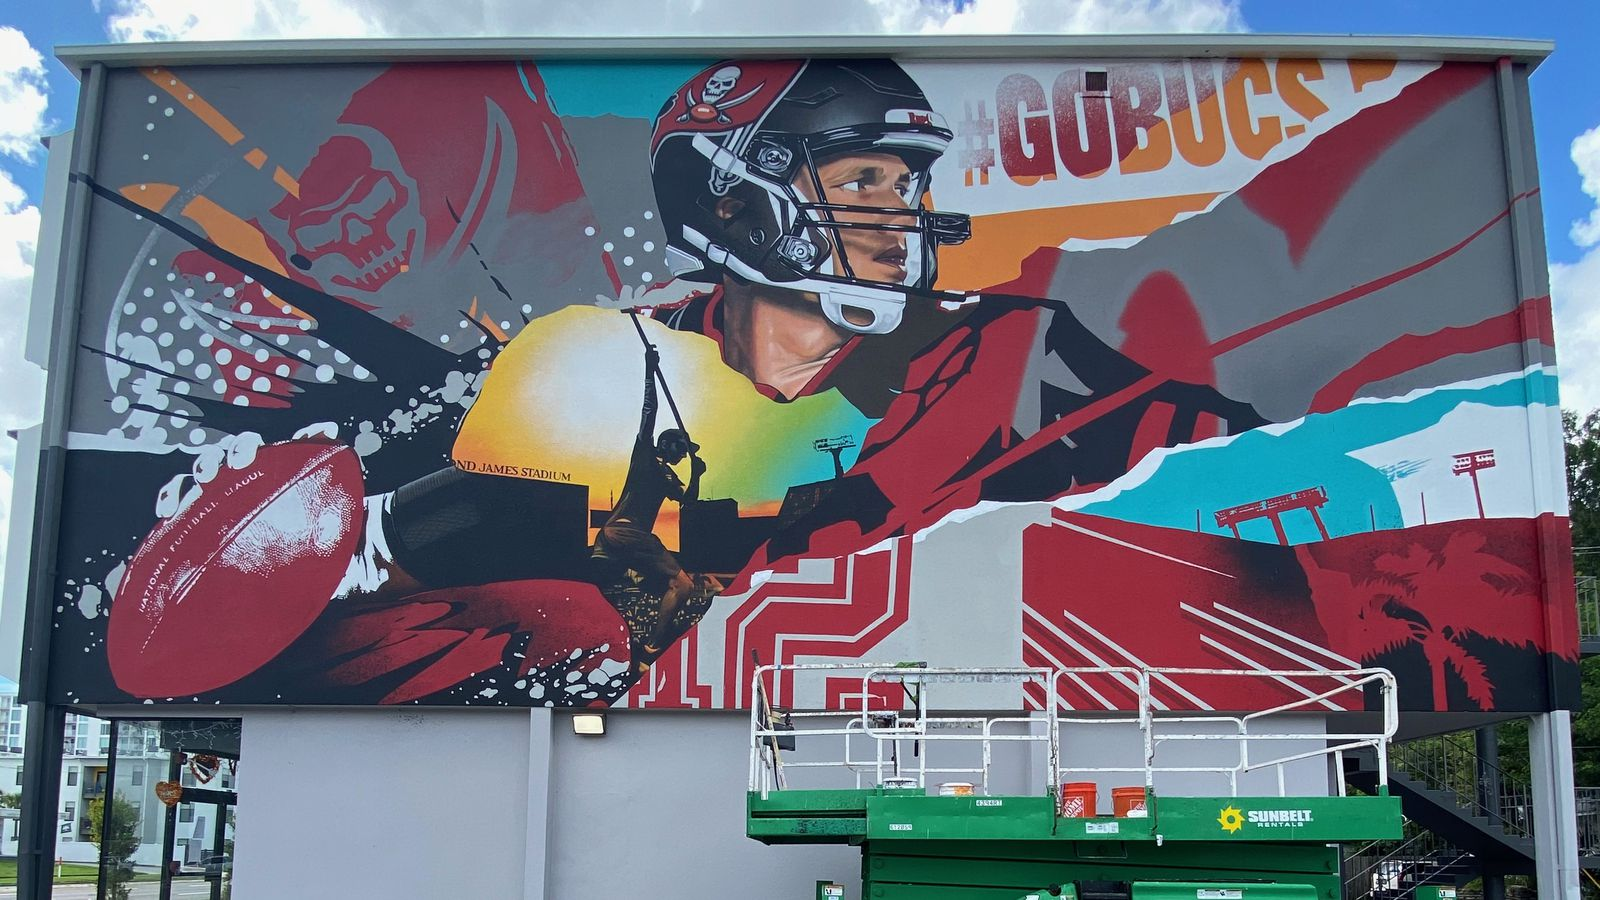 Take A Selfie With The Bucs Murals In St Petersburg